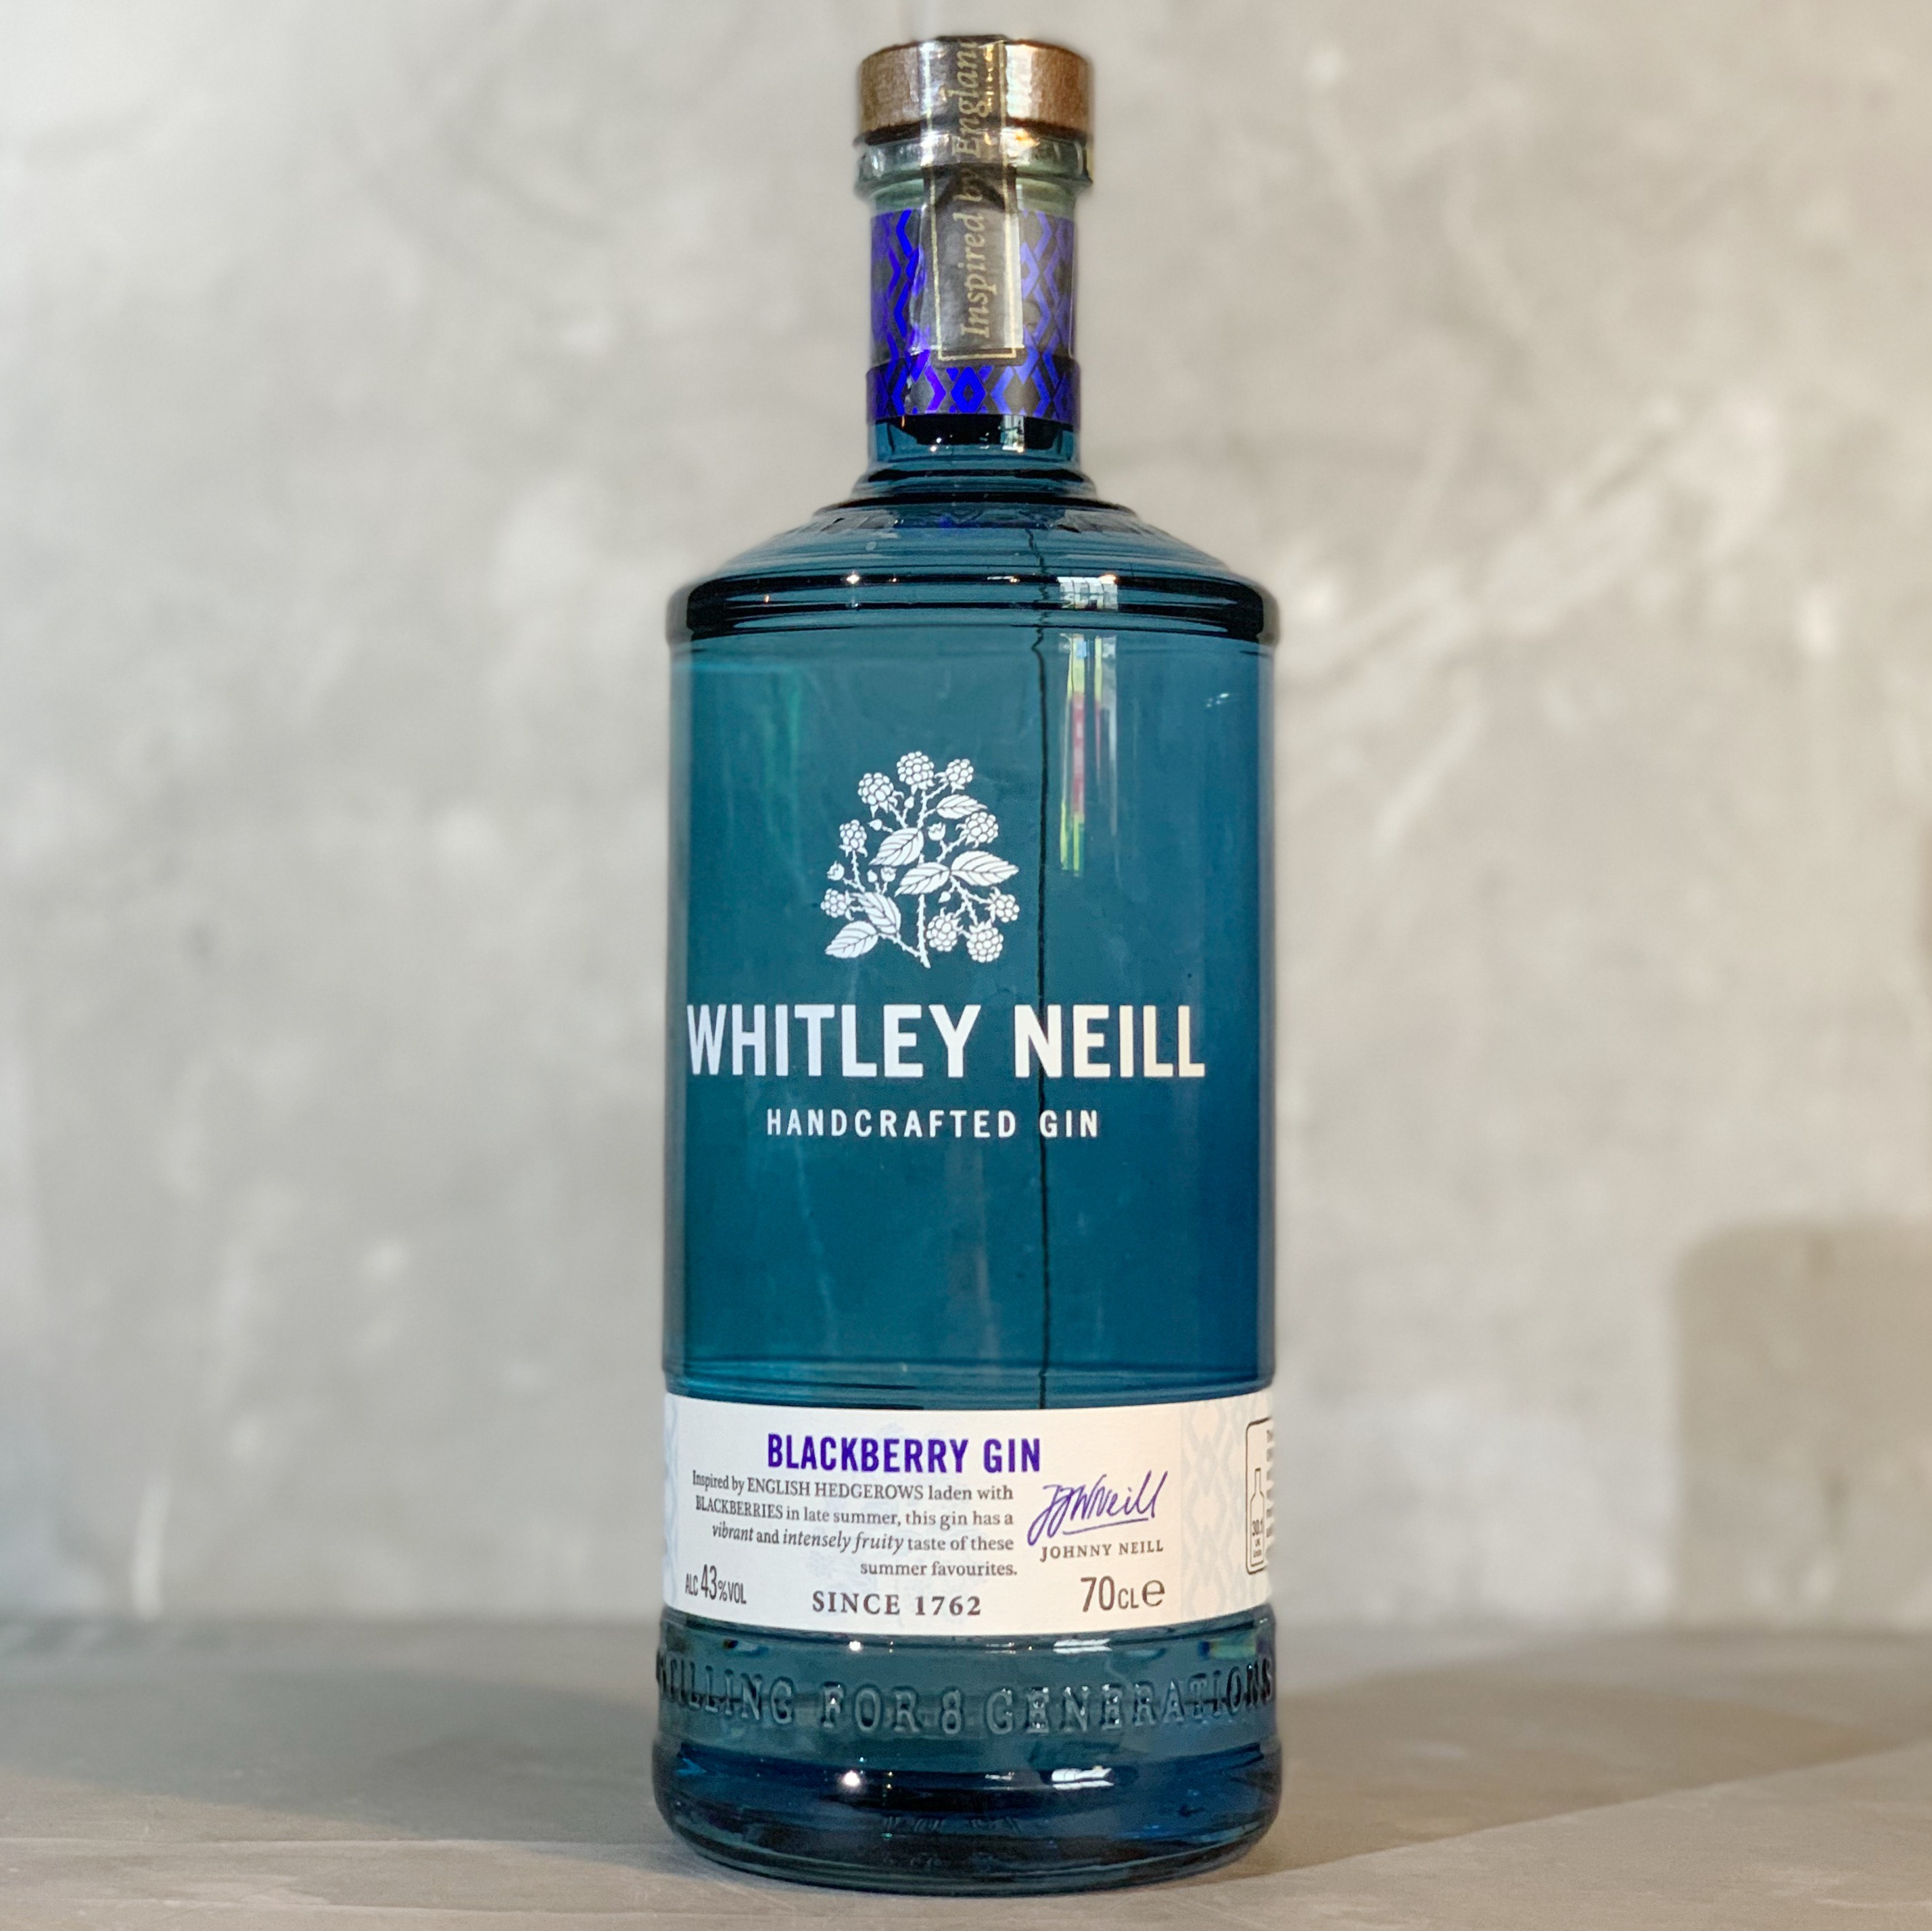 WHITLEY NEILL | BLACKBERRY GIN | 70CL | 43% ABV